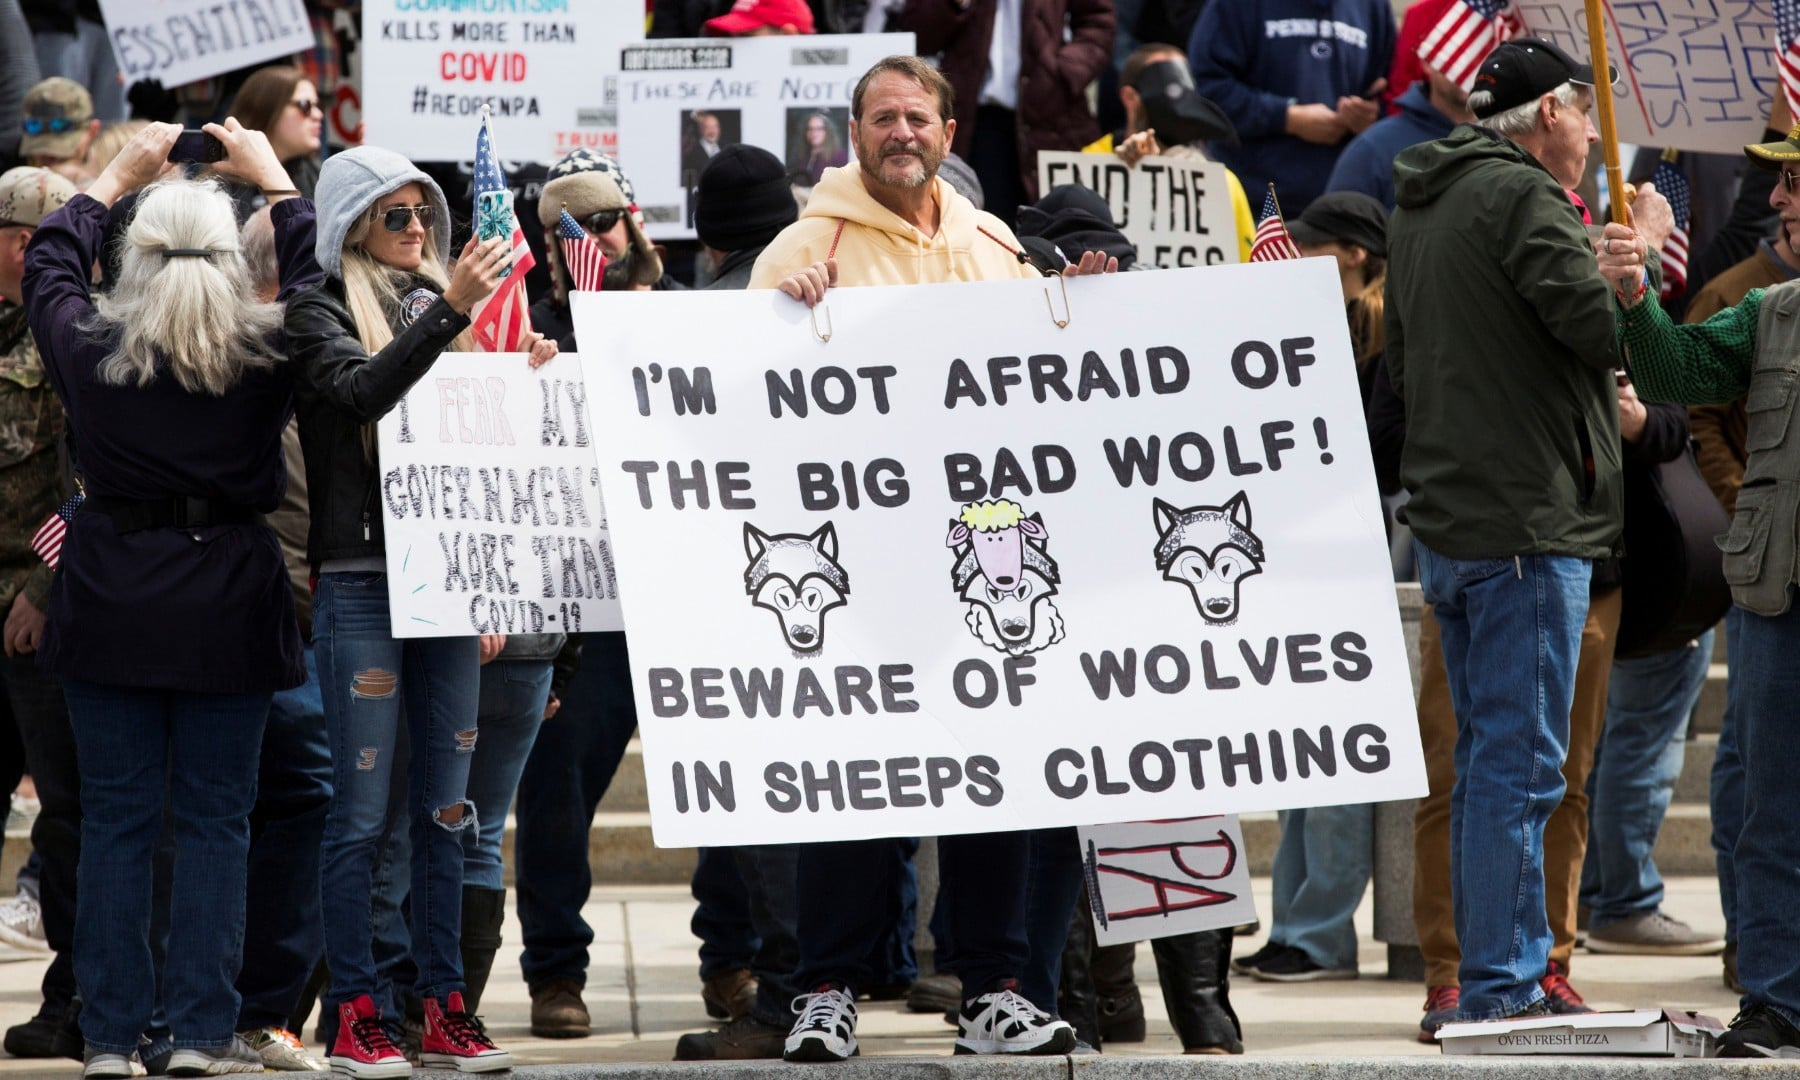 Demonstrators gather to protest against Pennsylvania's stay-at-home order to help slow the spread of Covid-19 on April 20. — Reuters